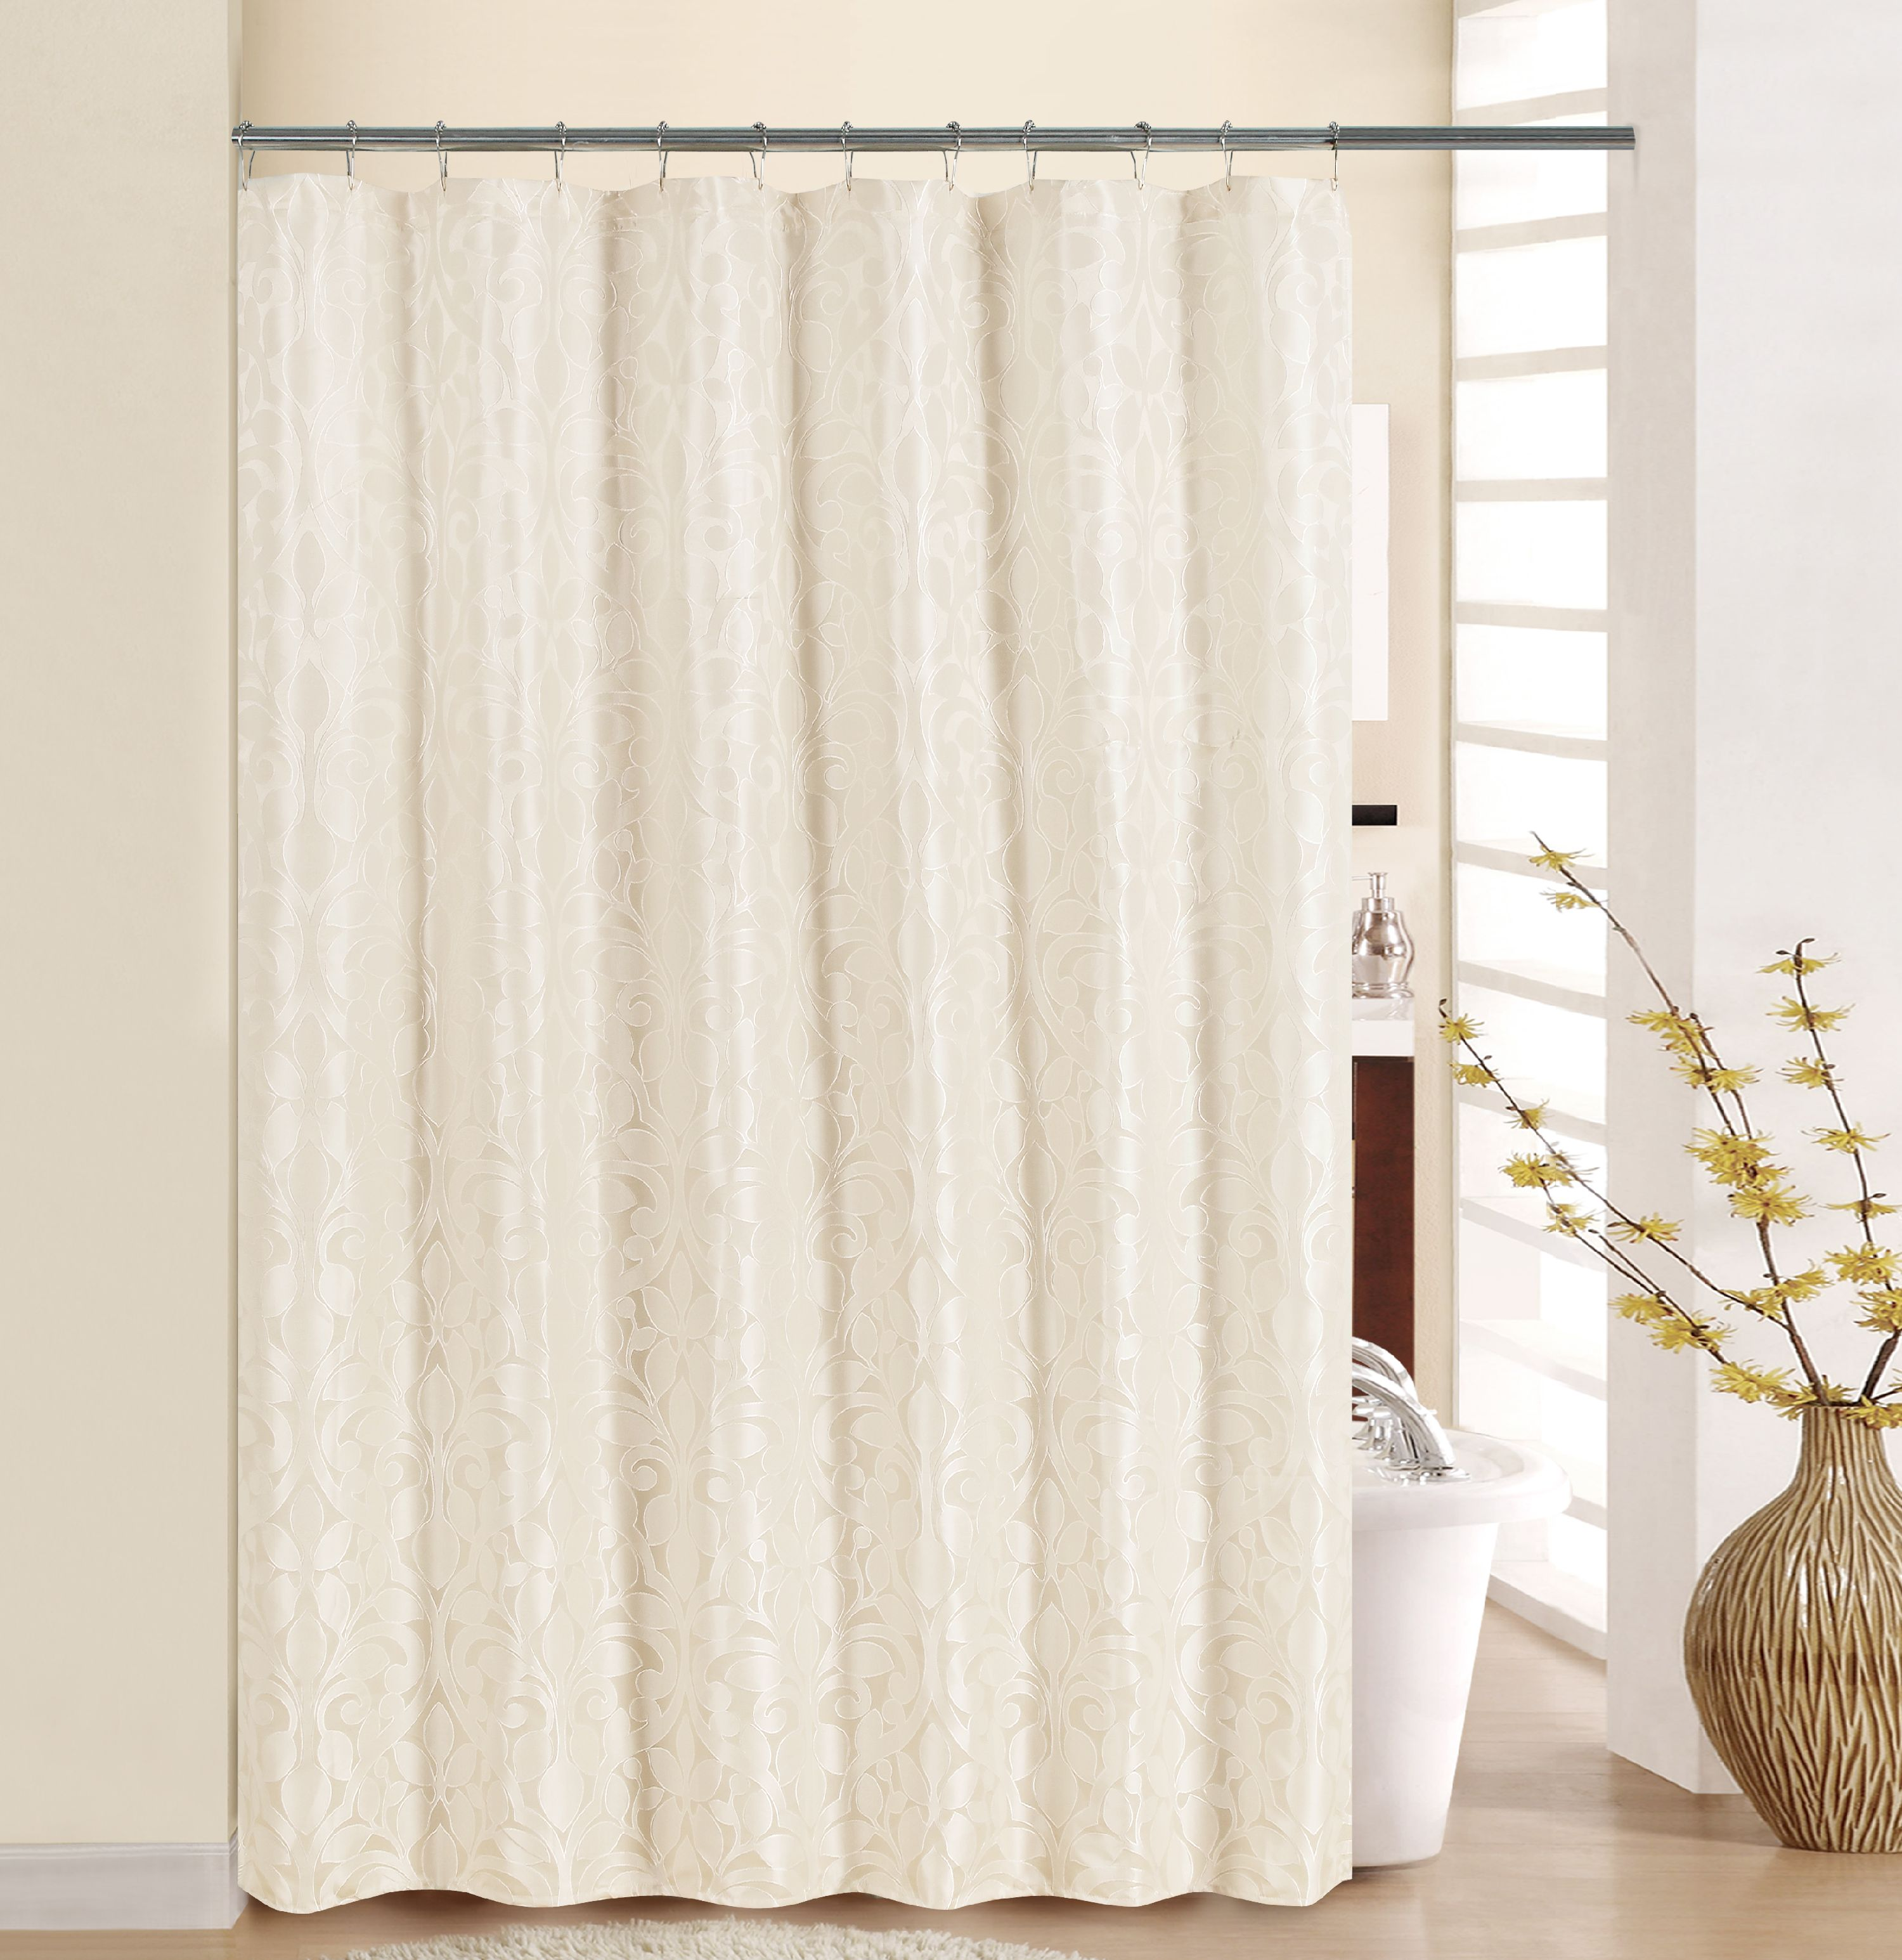 Better Homes And Gardens Damask Scroll Shower Curtain   Ivory